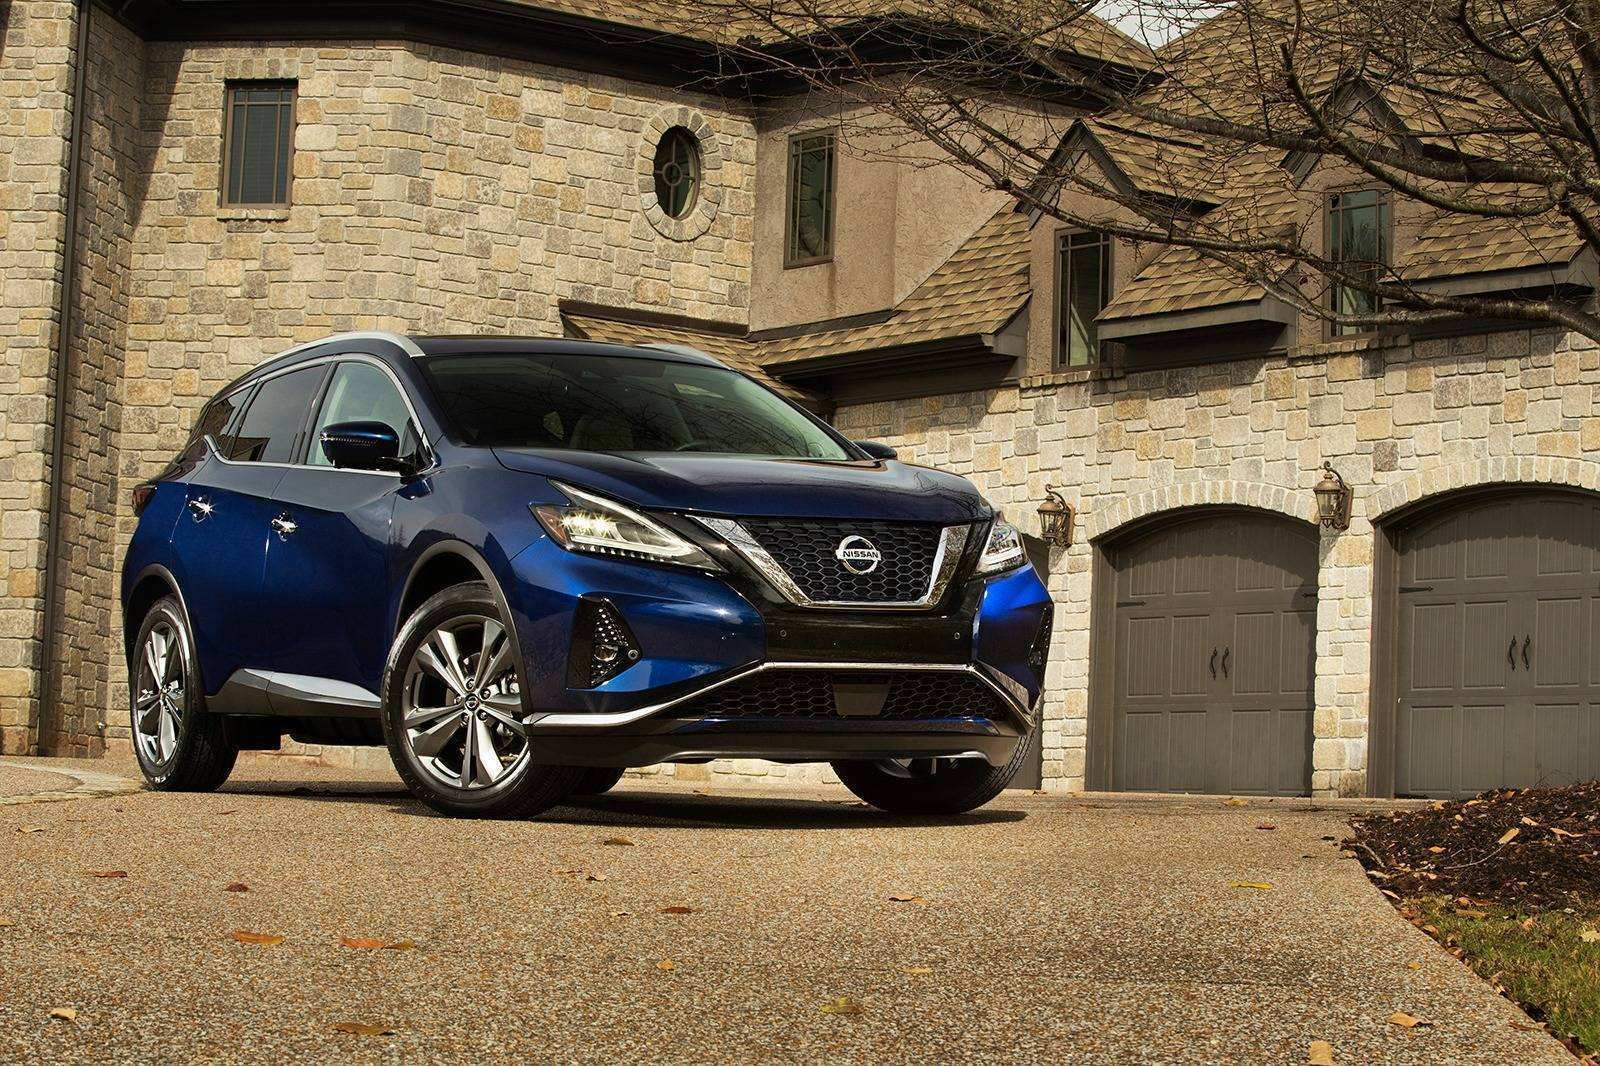 57 New When Do Nissan 2019 Models Come Out Price Reviews with When Do Nissan 2019 Models Come Out Price